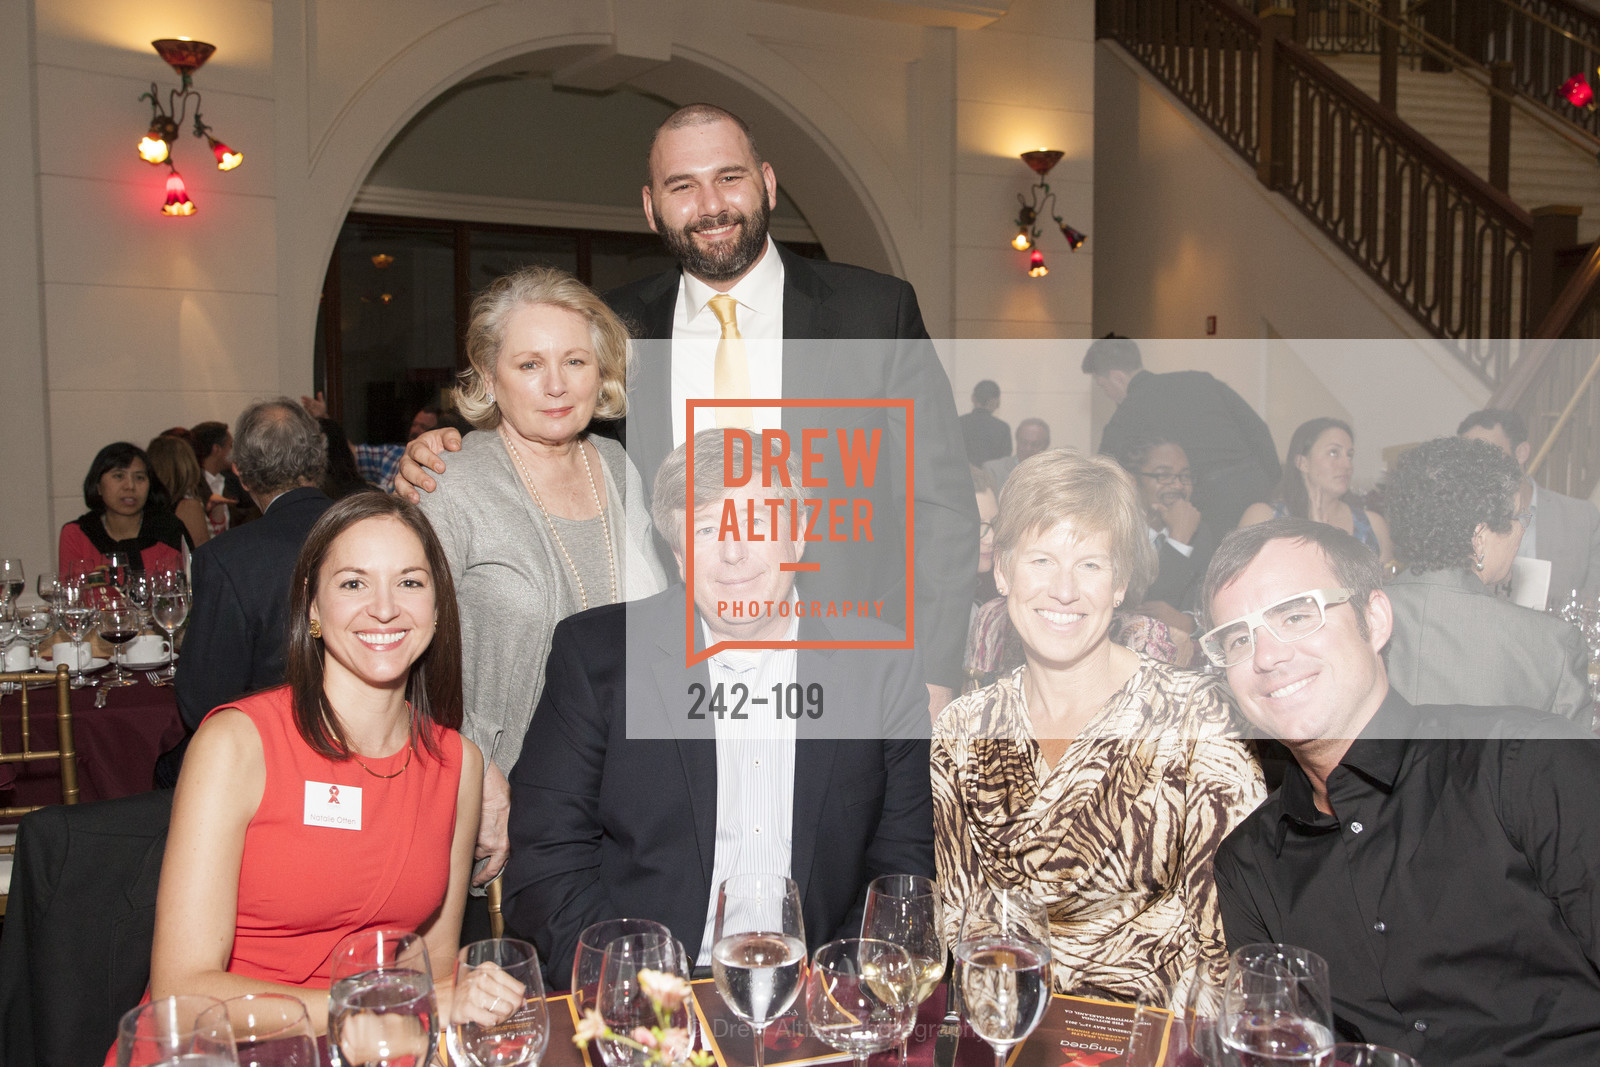 Natalie Otten, Karen Duffy, Scott Taylor, Matt O'Connor, Shelly Taylor, PANGAEA GLOBAL HEALTH Leadership Dinner at Rotunda in Oakland, The Rotunda. Oakland, May 11th, 2015,Drew Altizer, Drew Altizer Photography, full-service agency, private events, San Francisco photographer, photographer california